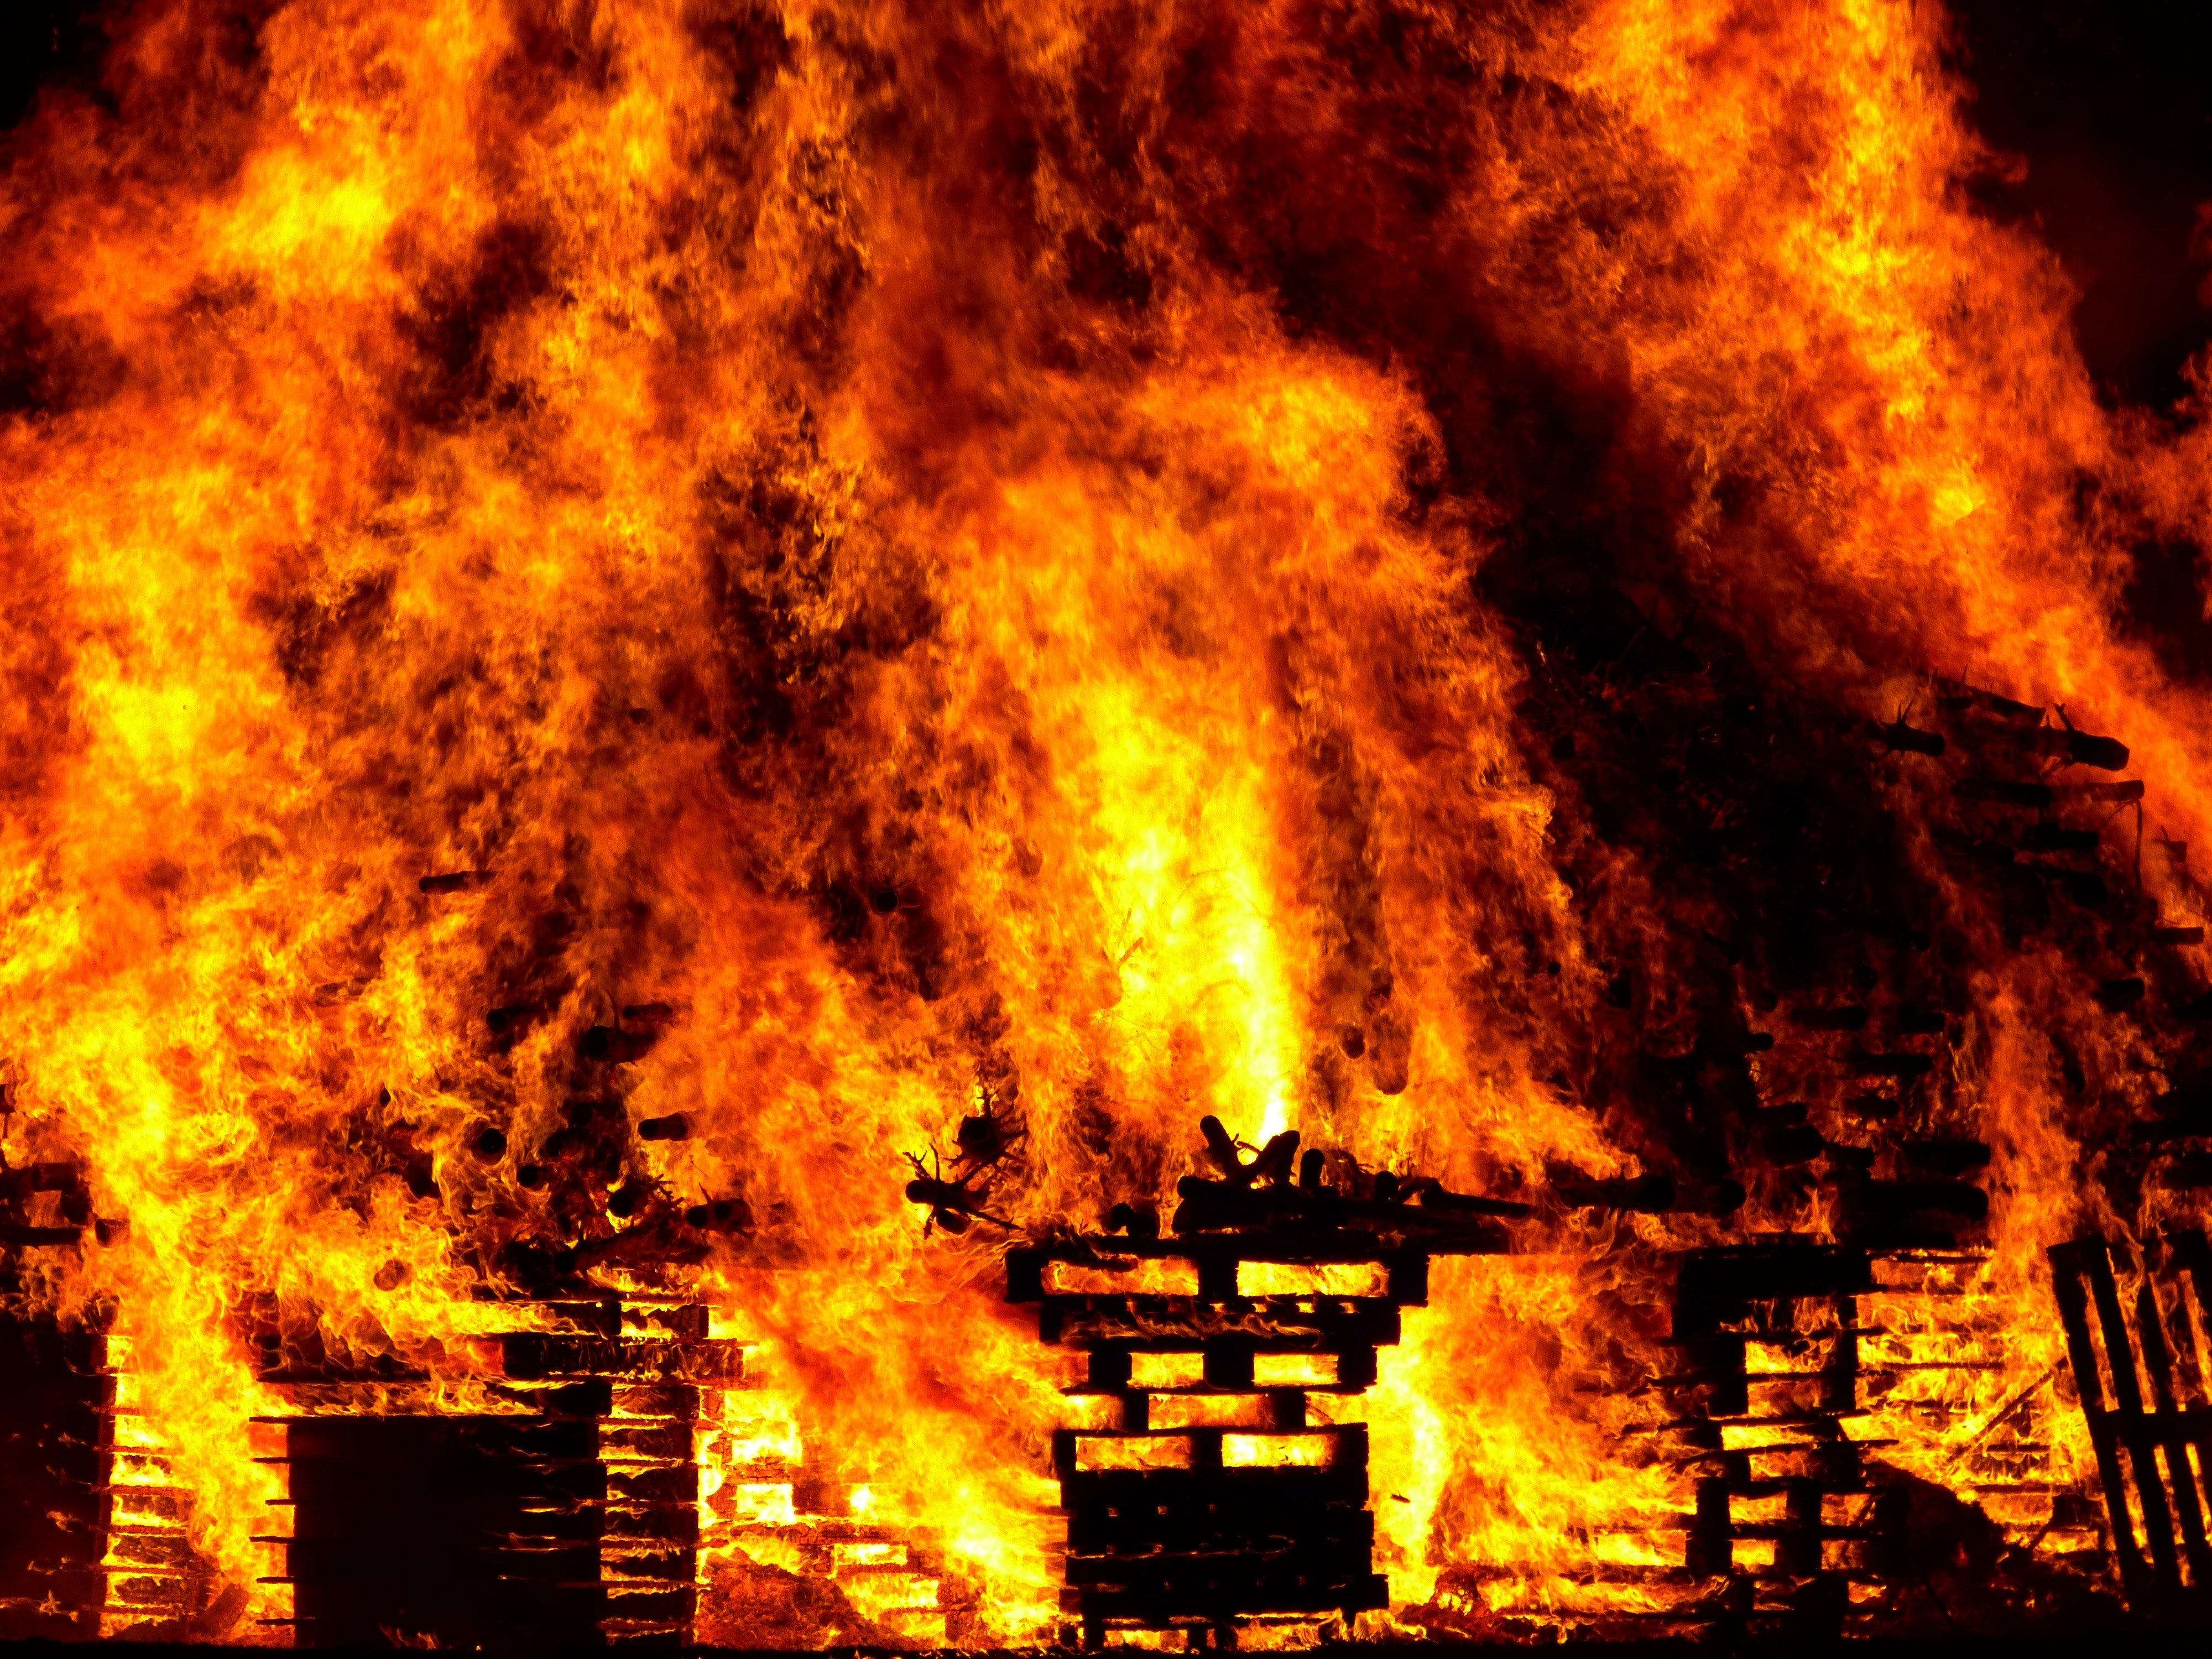 A raging house fire.   Photo: Pexels/ Pixabay